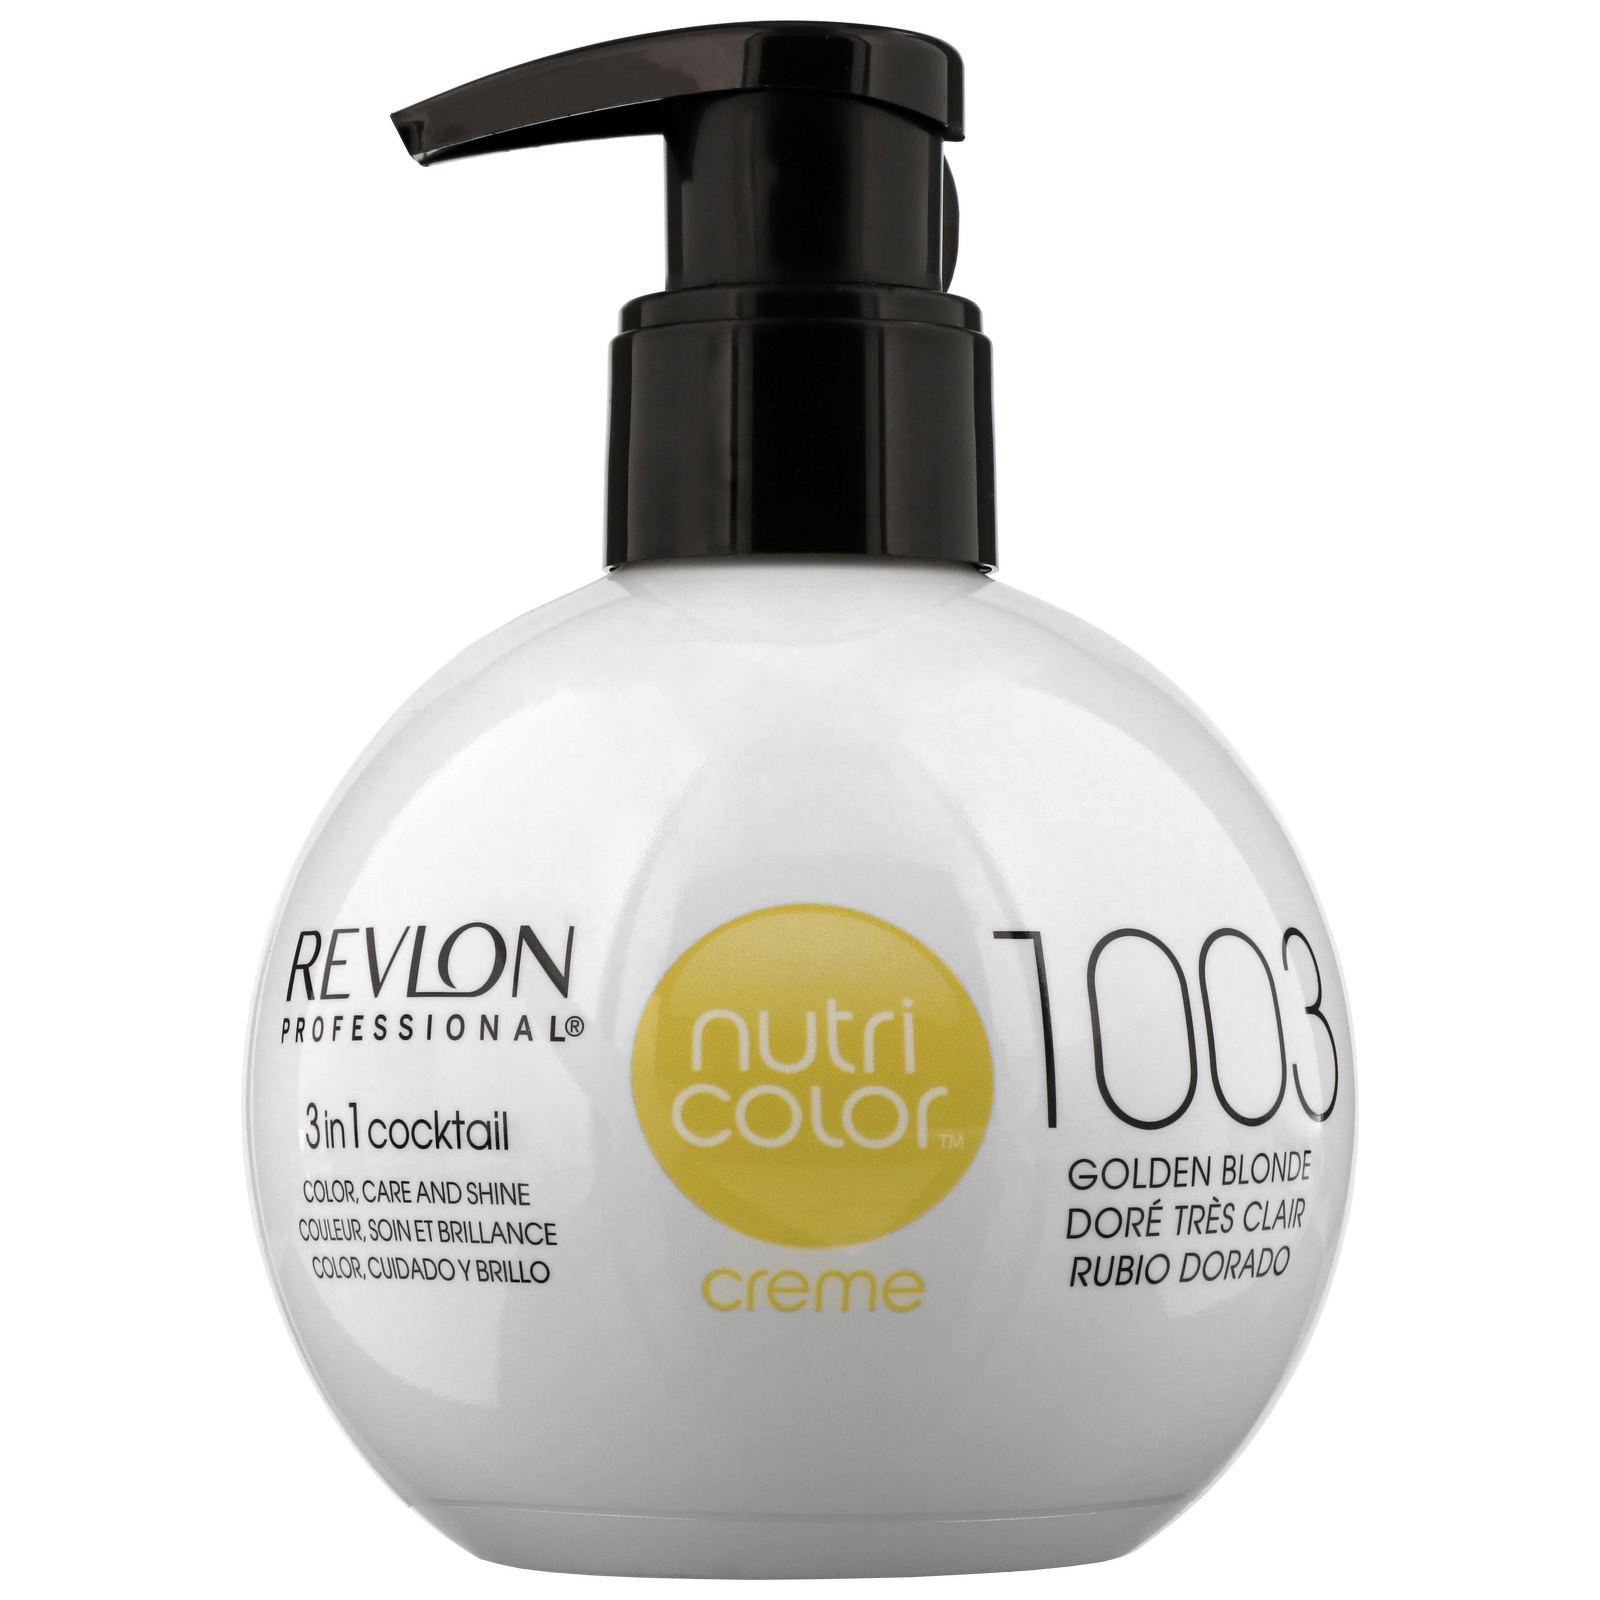 Nutri Color Creme 1003 Golden Blonde 270 ml